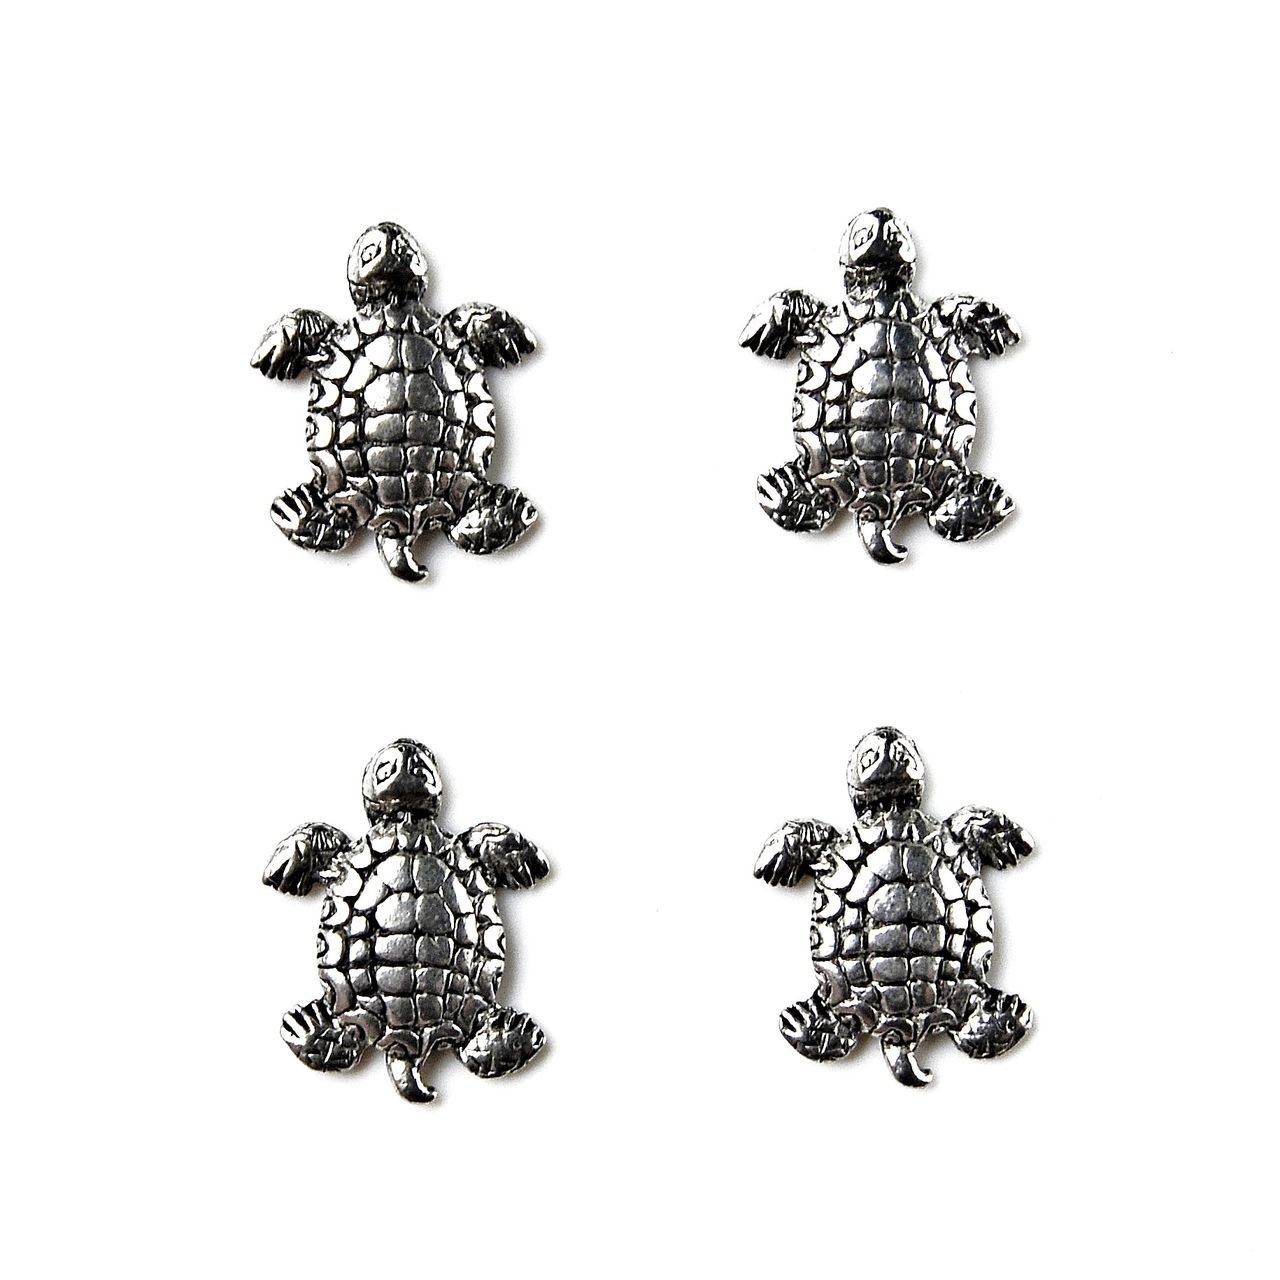 Quality Handcrafts Guaranteed Turtle Tuxedo Studs